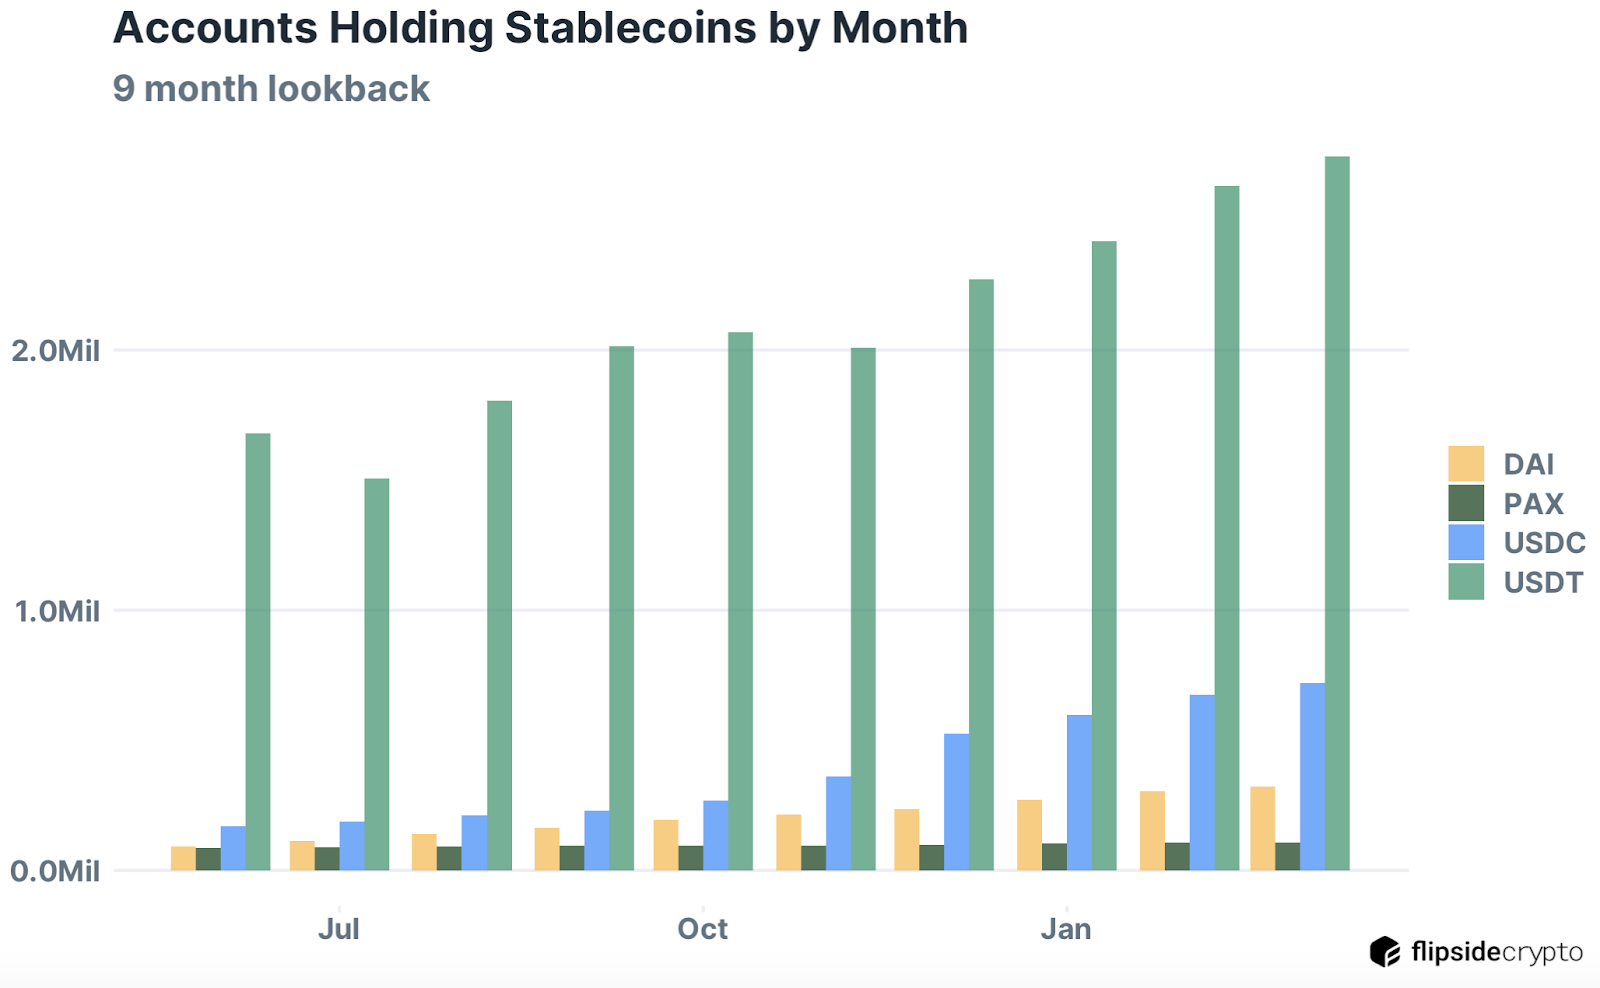 stablecoinaccounts